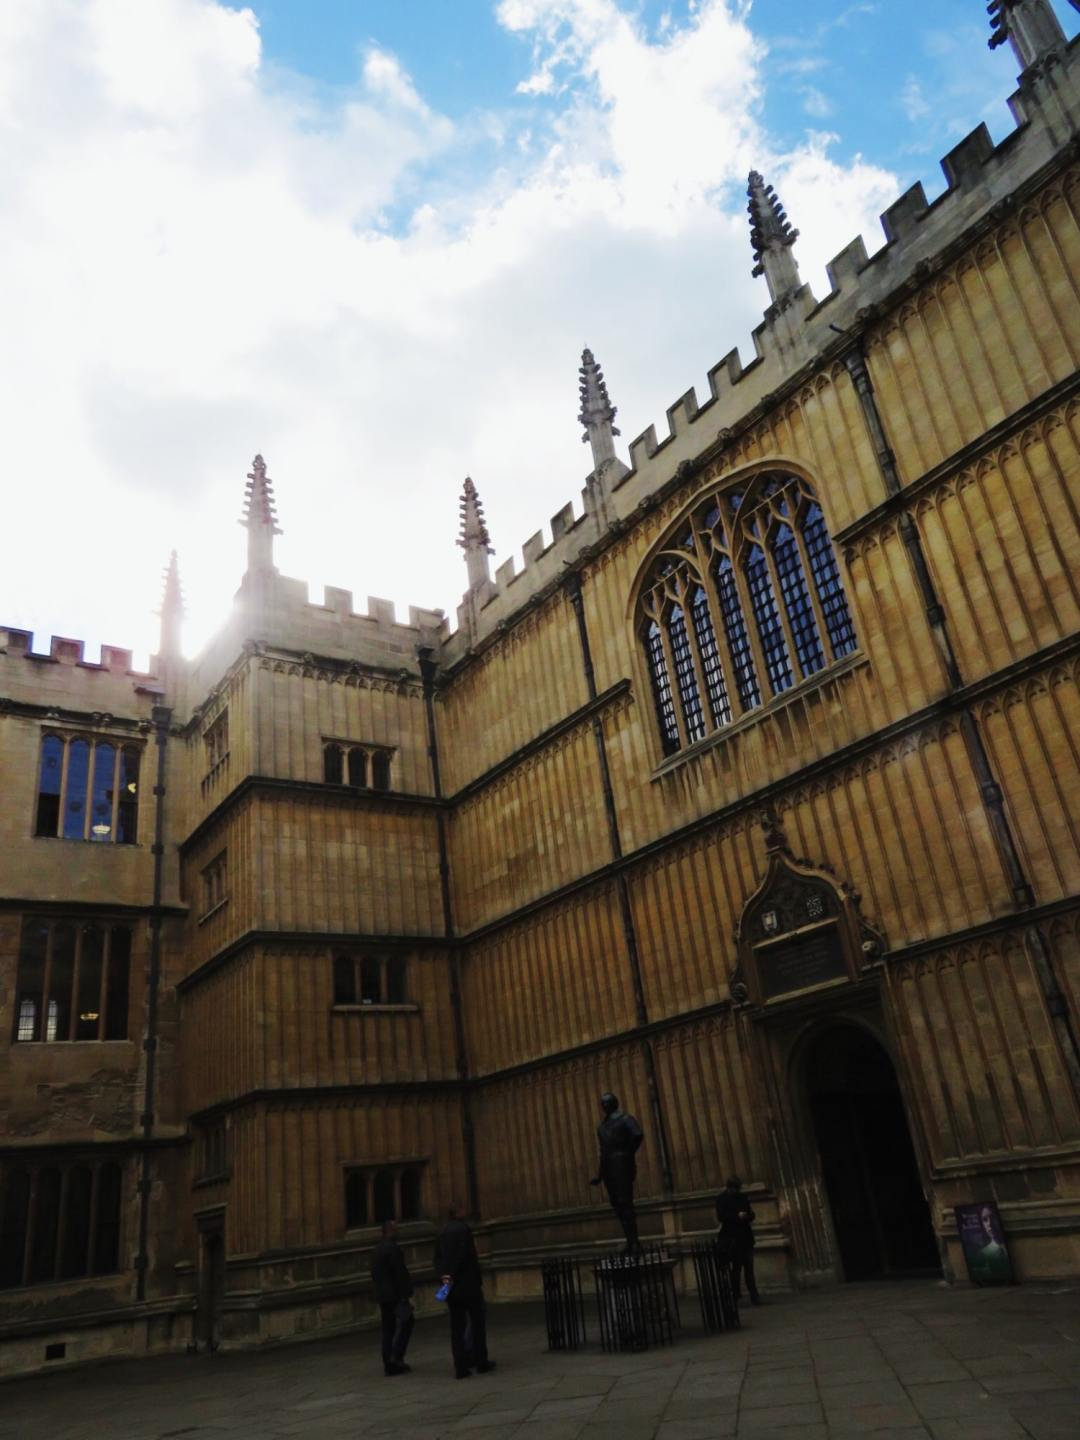 Old Bodleian Library in Oxford